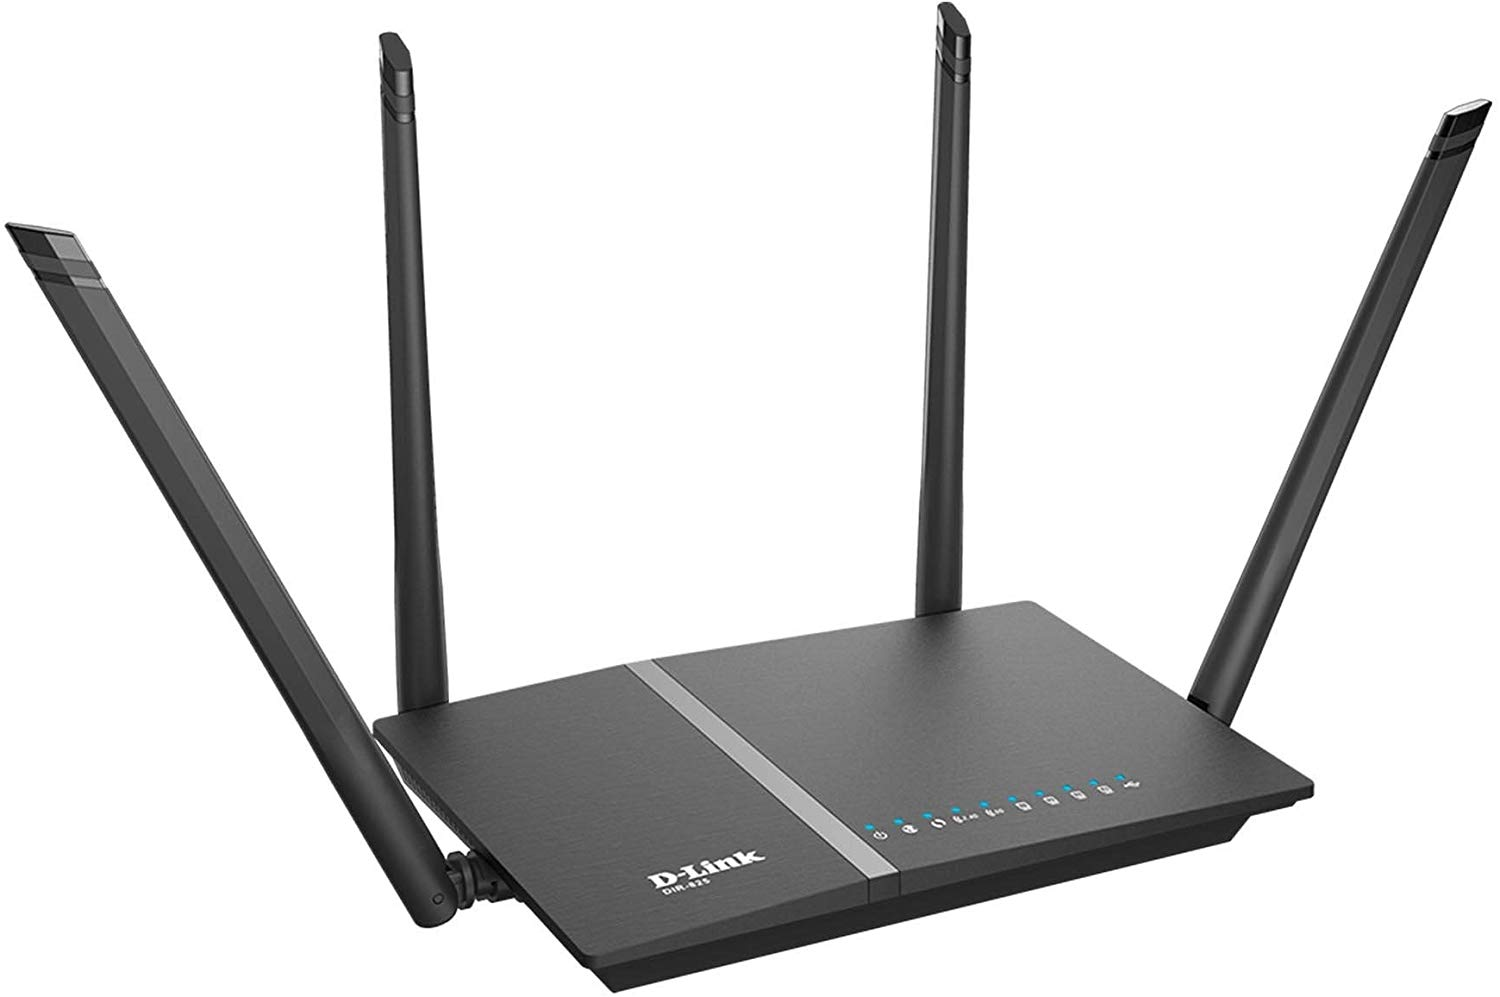 D-Link DIR-825+ AC1200 High-Gain Wi-Fi Gigabit Router ของแท้ ประกัน Limited Lifetime